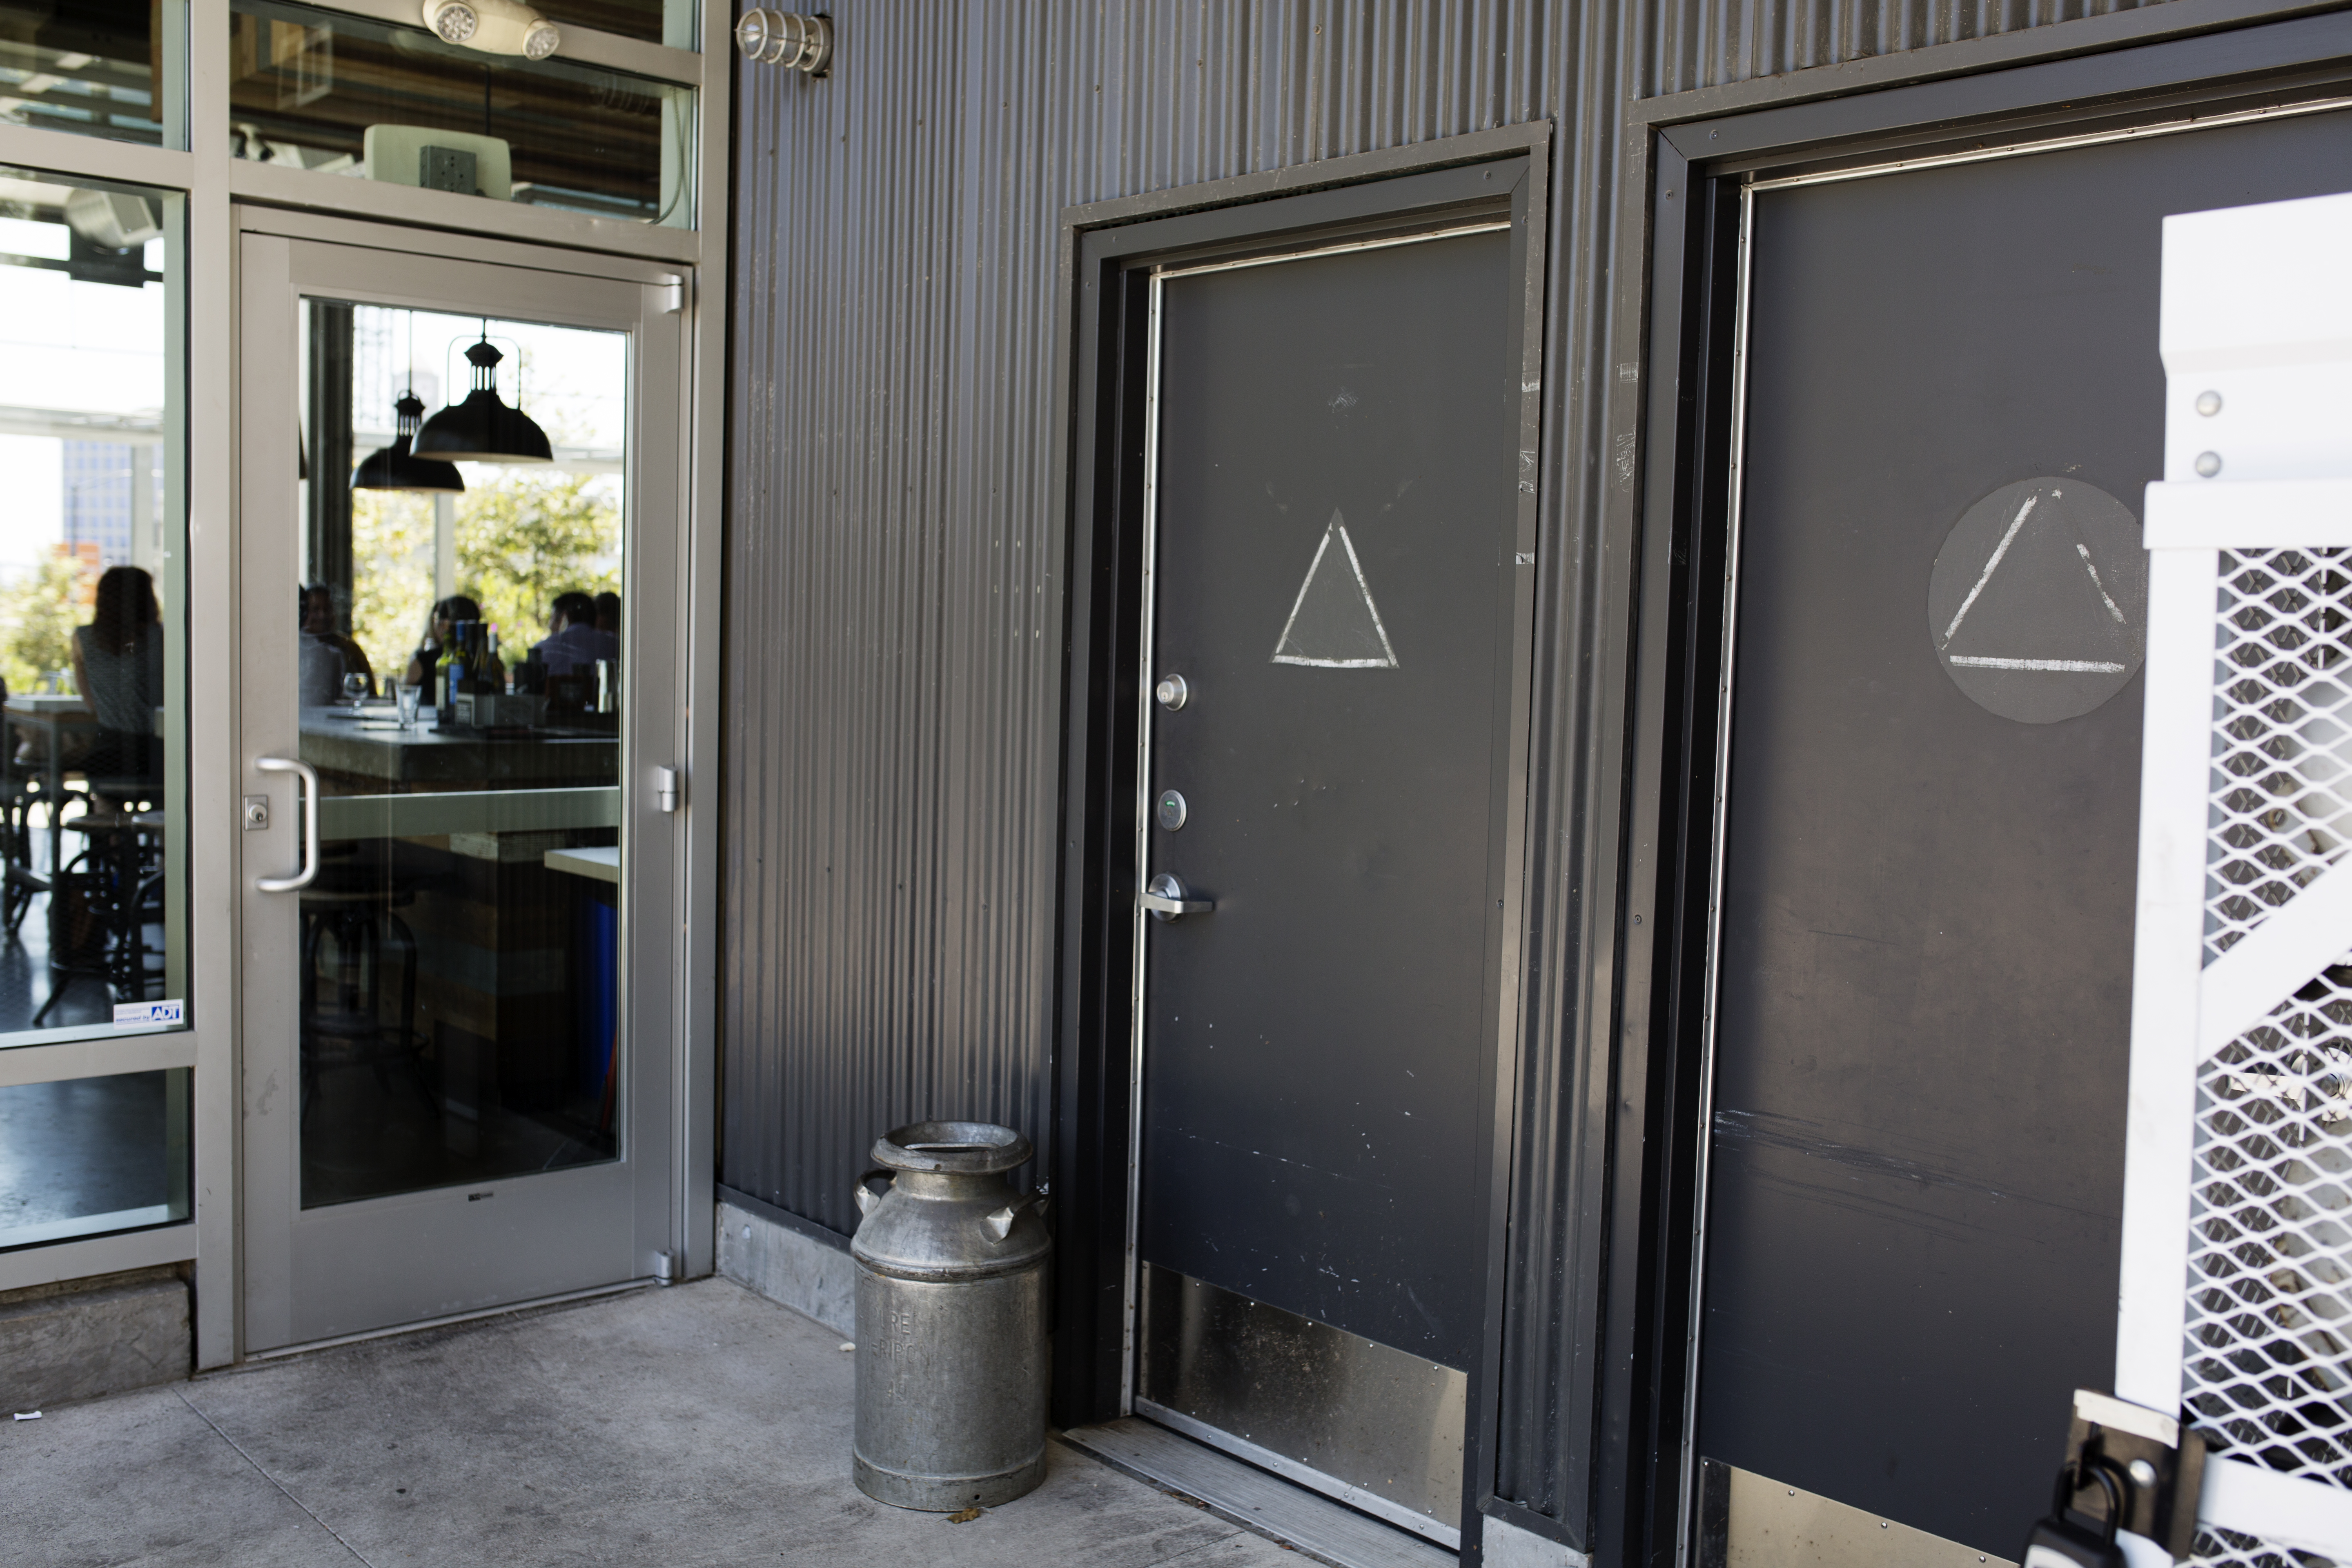 San Diego Will Reopen Locked Restrooms In East Village It Paid Developer 16M To Maintain